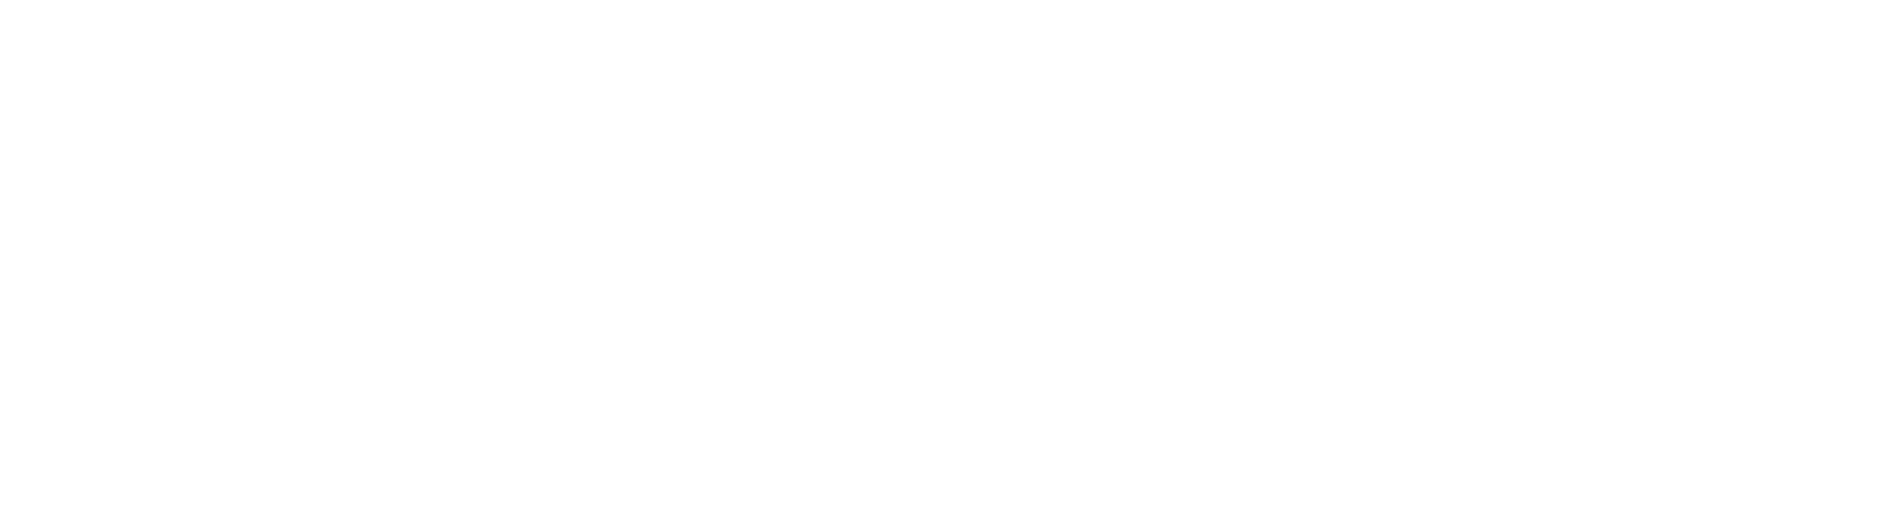 Member of Baby loss awareness